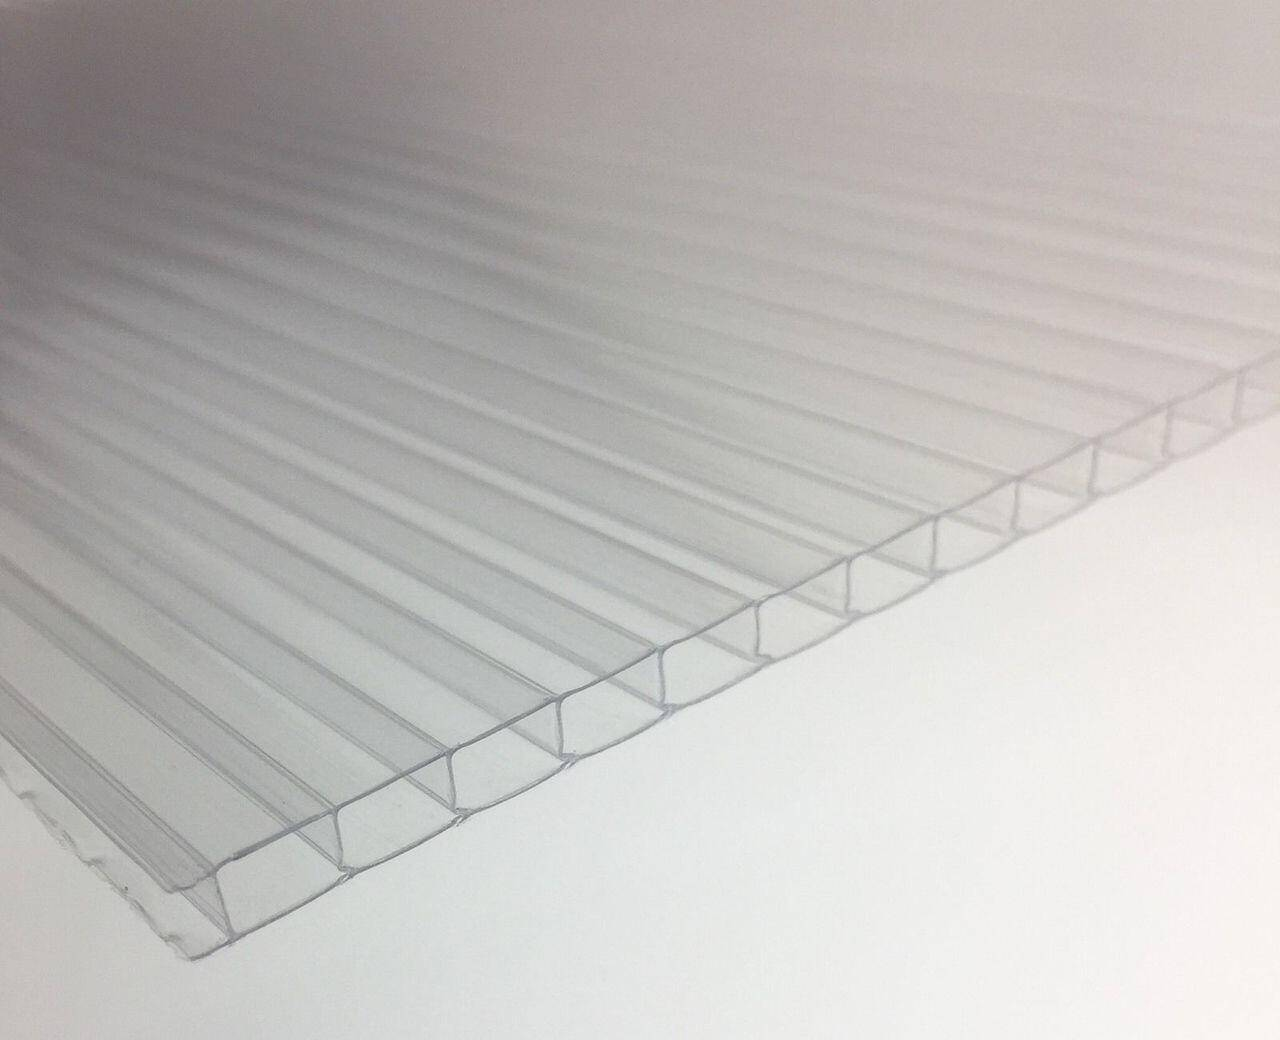 Pack of 10 4mm twinwall polycarbonate replacement greenhouse glazing panels 610mm x 1220mm